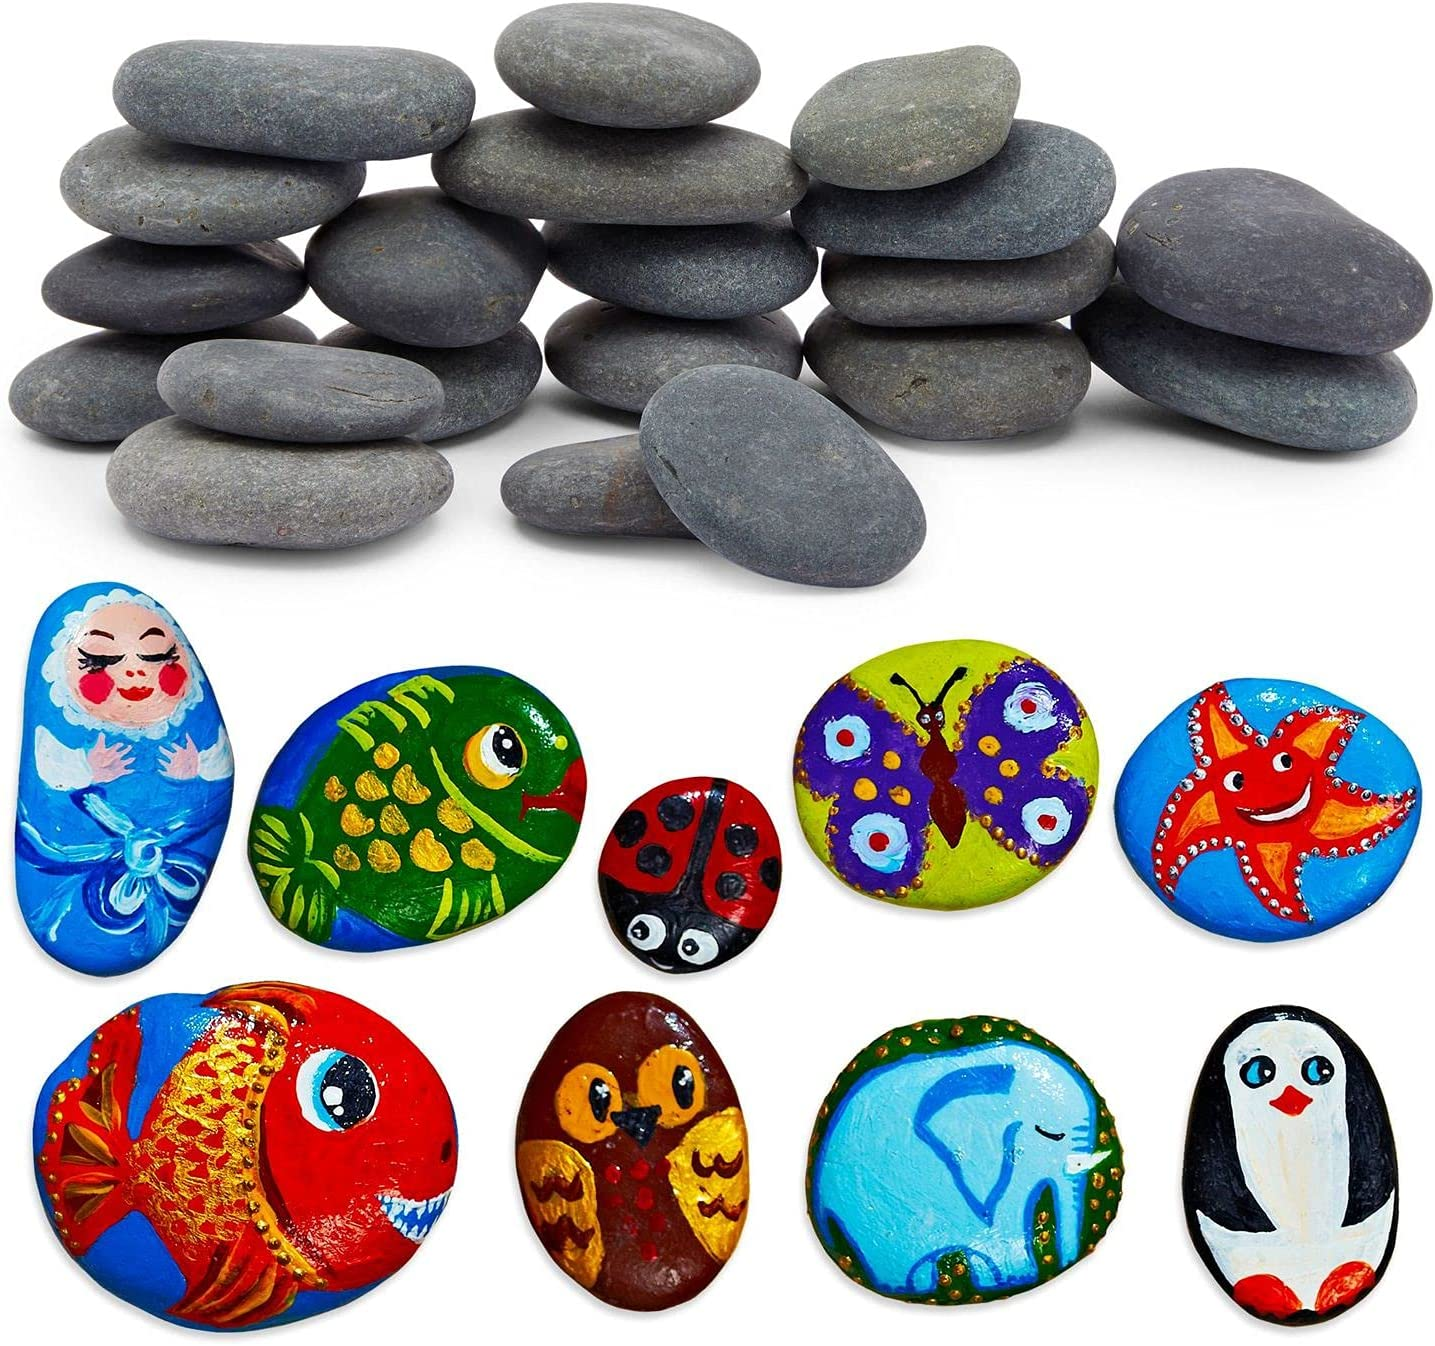 Bright Creations Painting Rocks for Kids Arts and Crafts, DIY Kindness Stones (2-3 in, 20 Pack)